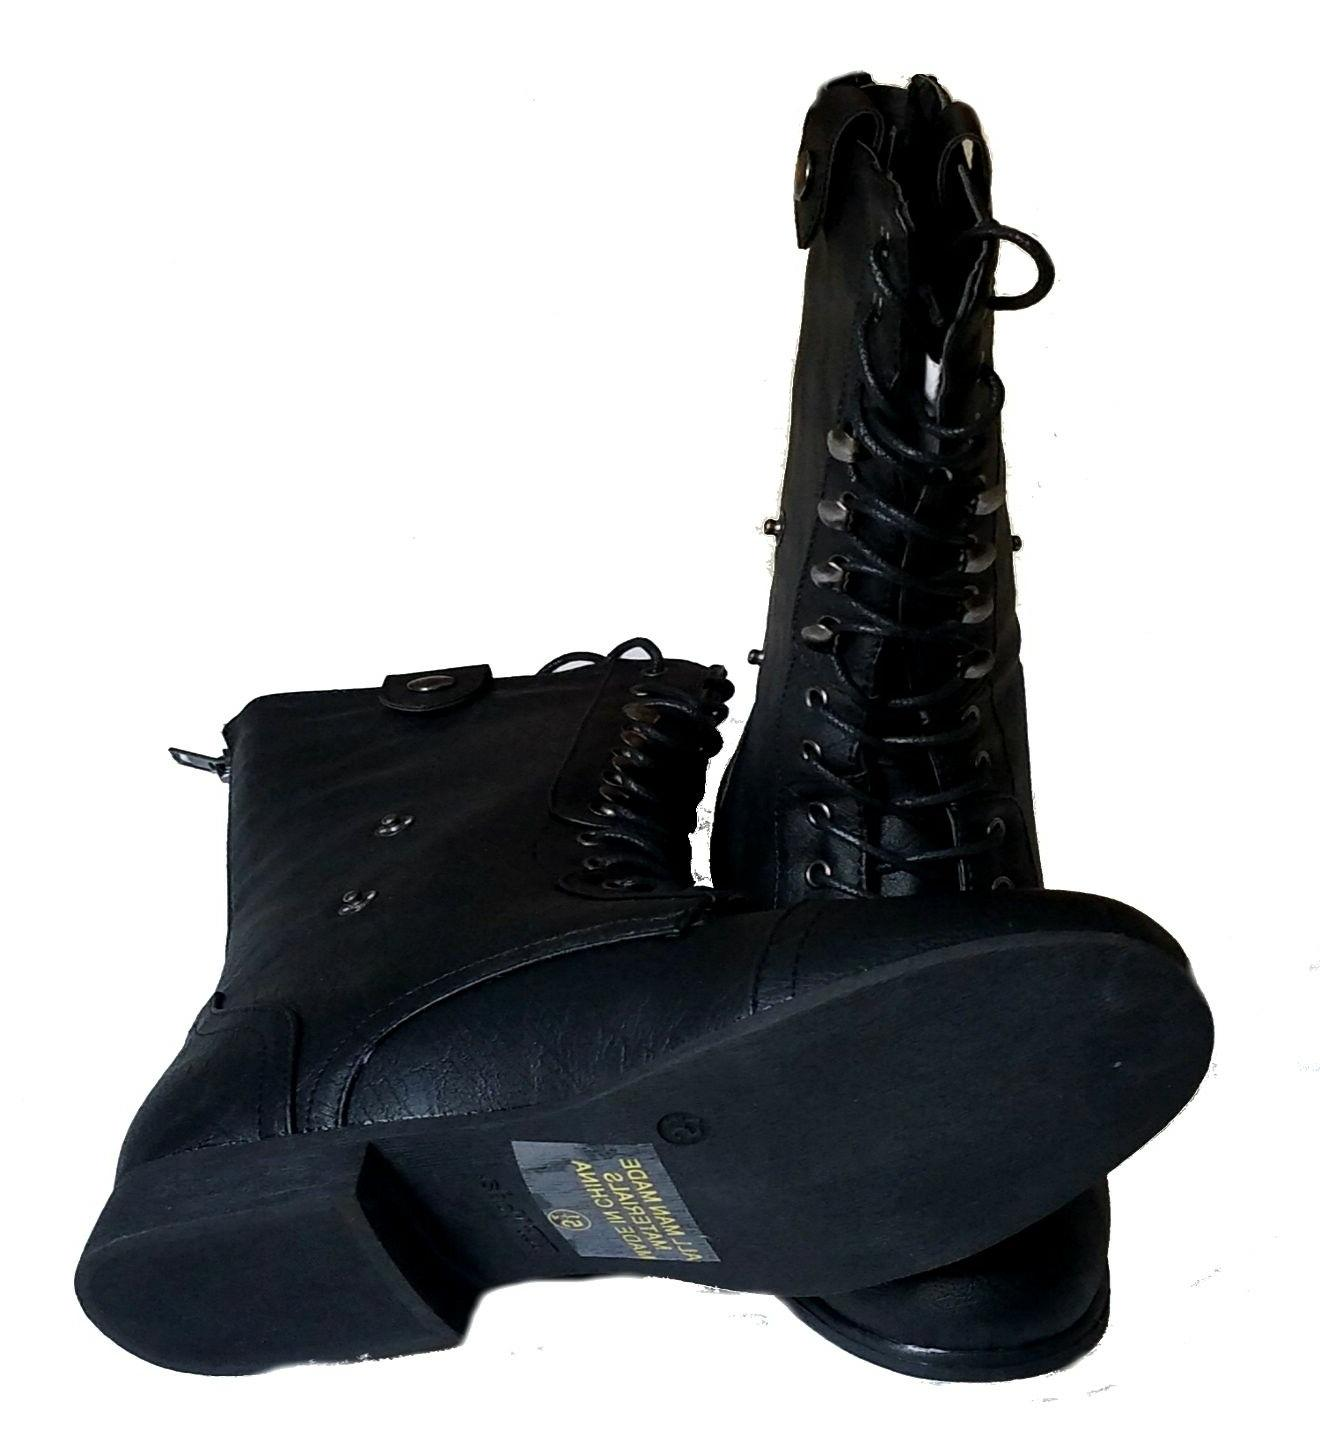 Top Modal SR-01 Women's Mid Calf Low Combat Military Boots Shoes